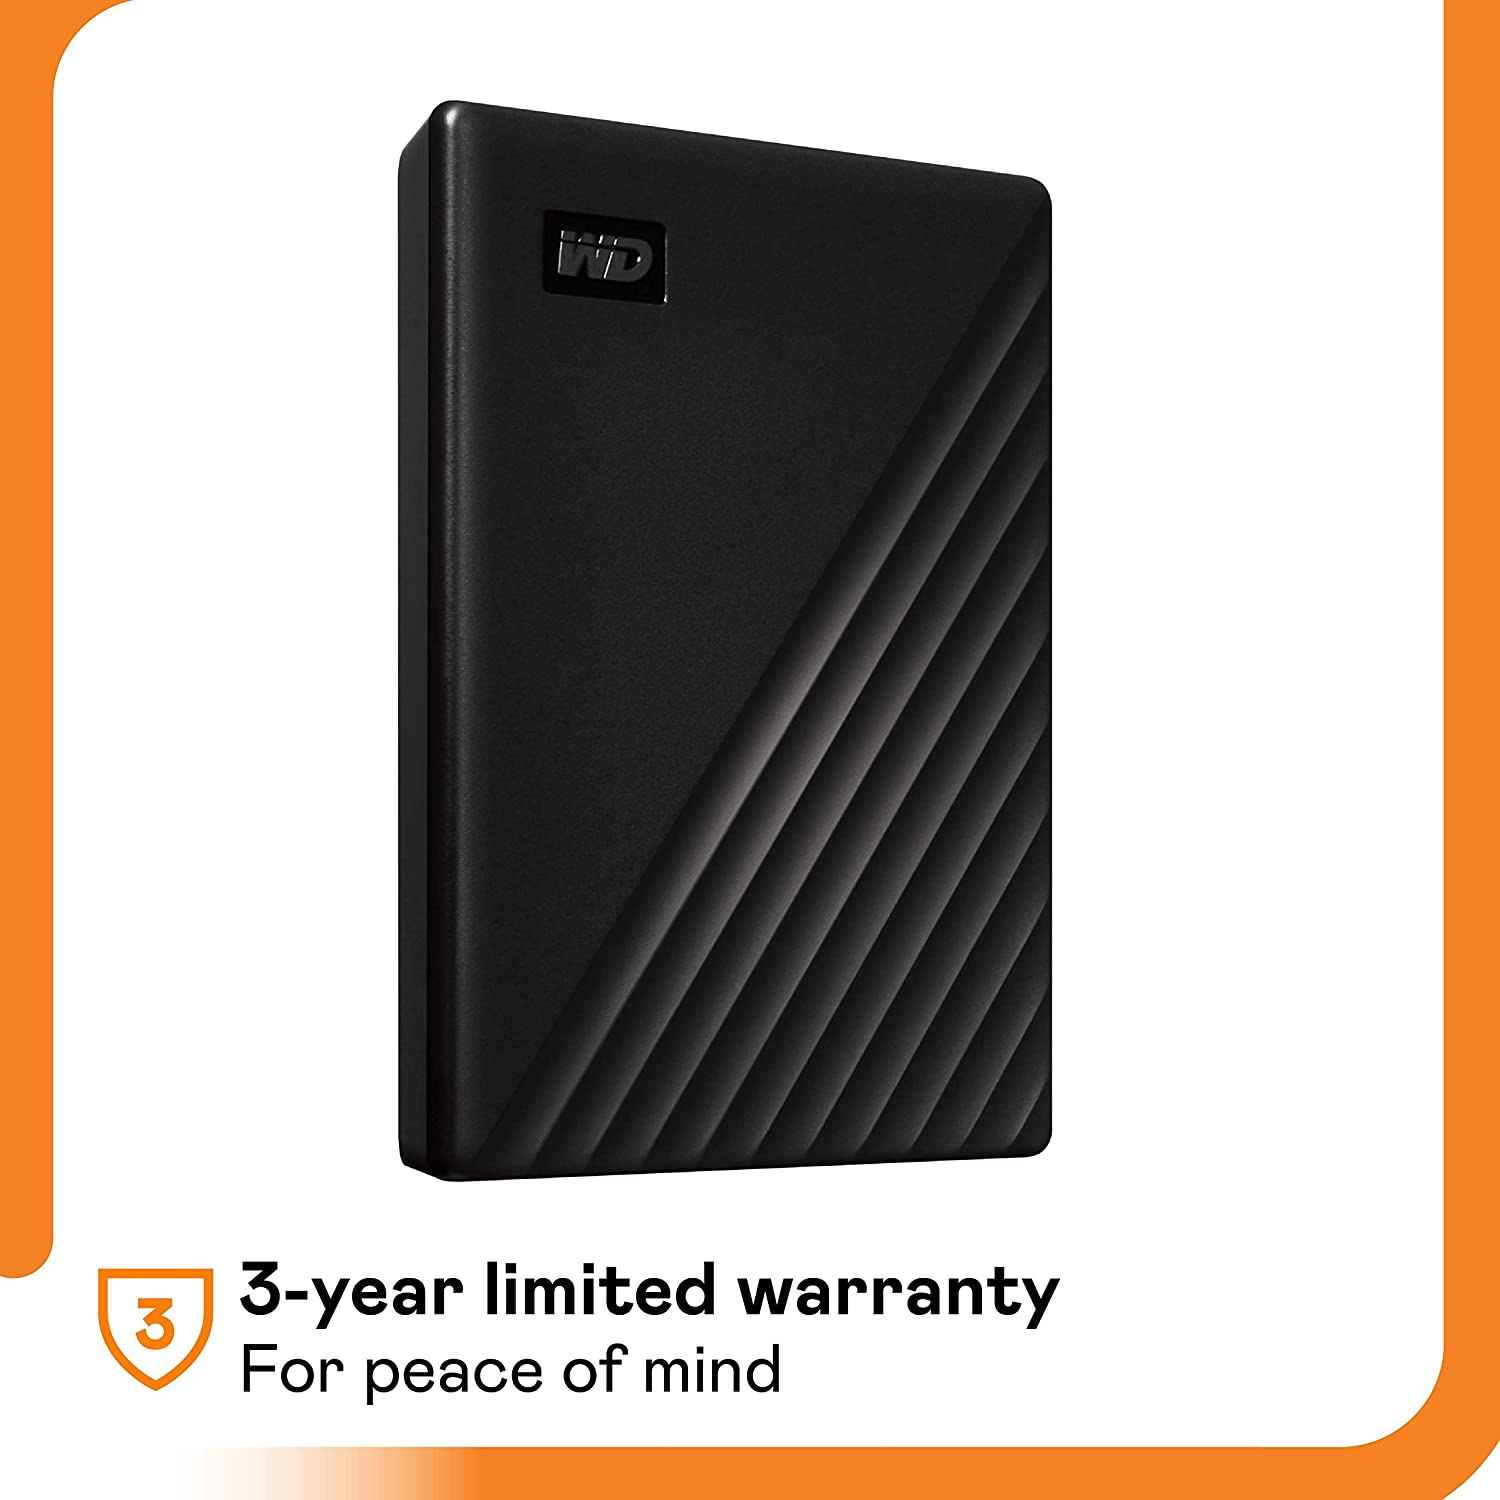 WD 2TB My Passport Portable External Hard Drive, USB 3.0, Compatible with PC, PS4 & Xbox (Black) - with Automatic Backup, 256Bit AES Hardware Encryption & Software Protection (WDBYVG0020BBK-WESN)